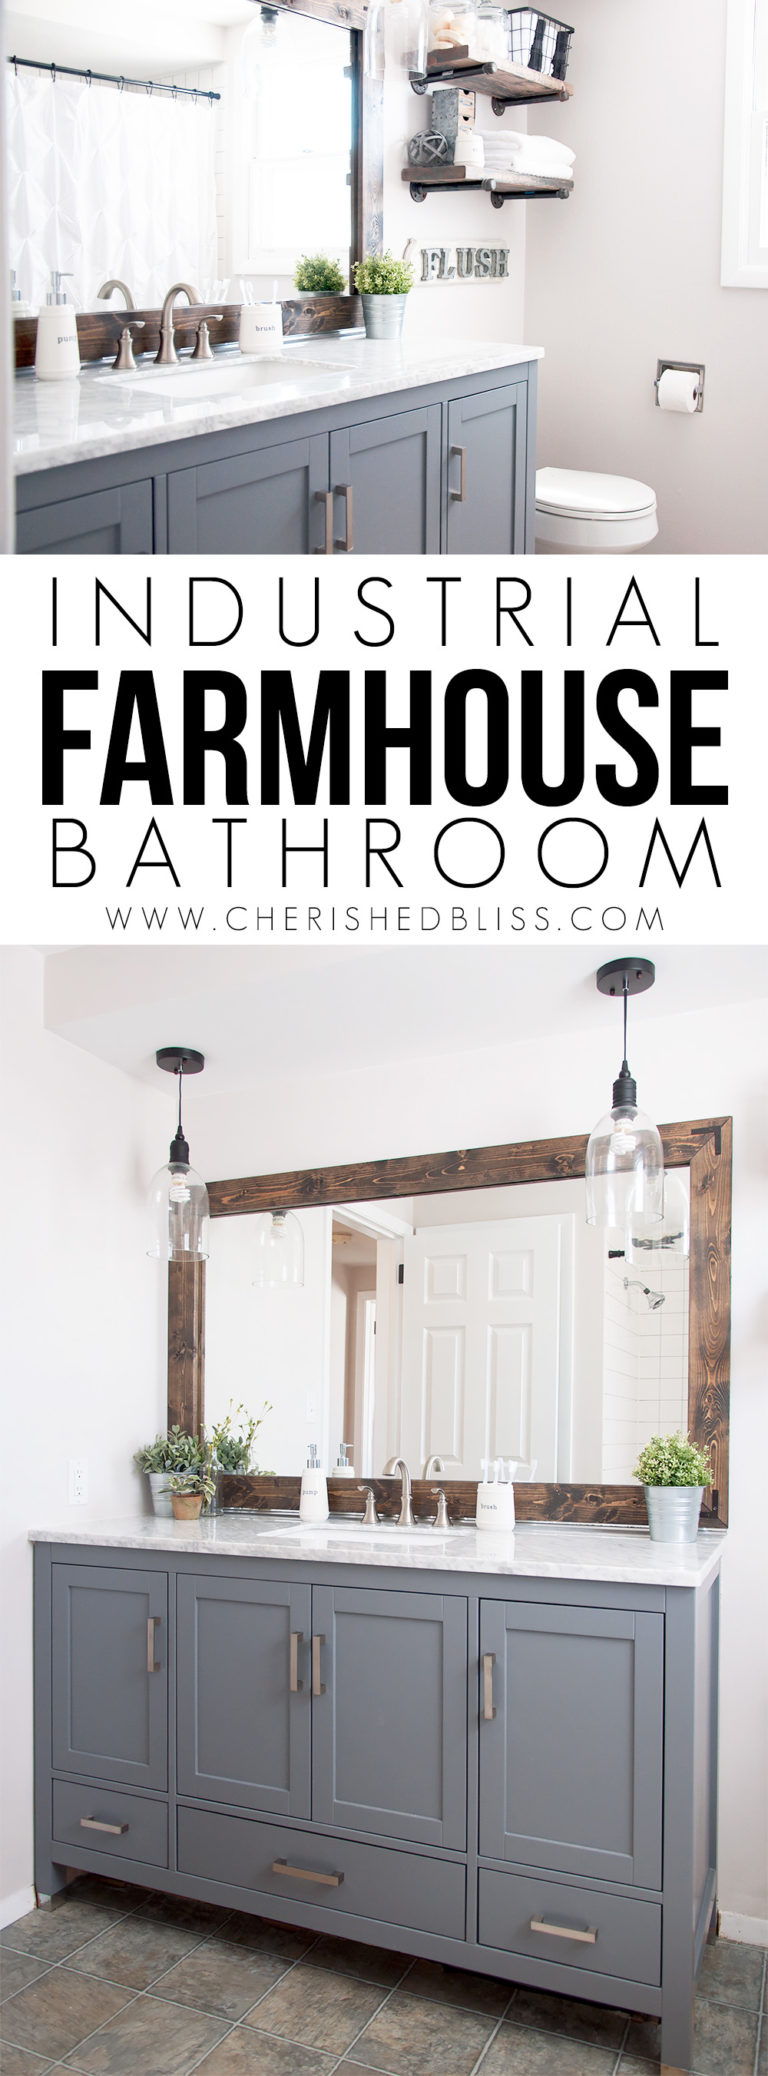 Industrial Farmhouse Bathroom Reveal - Cherished Bliss,  #Bathroom #Bliss #Cherished #Farmhou... #industrialfarmhouse